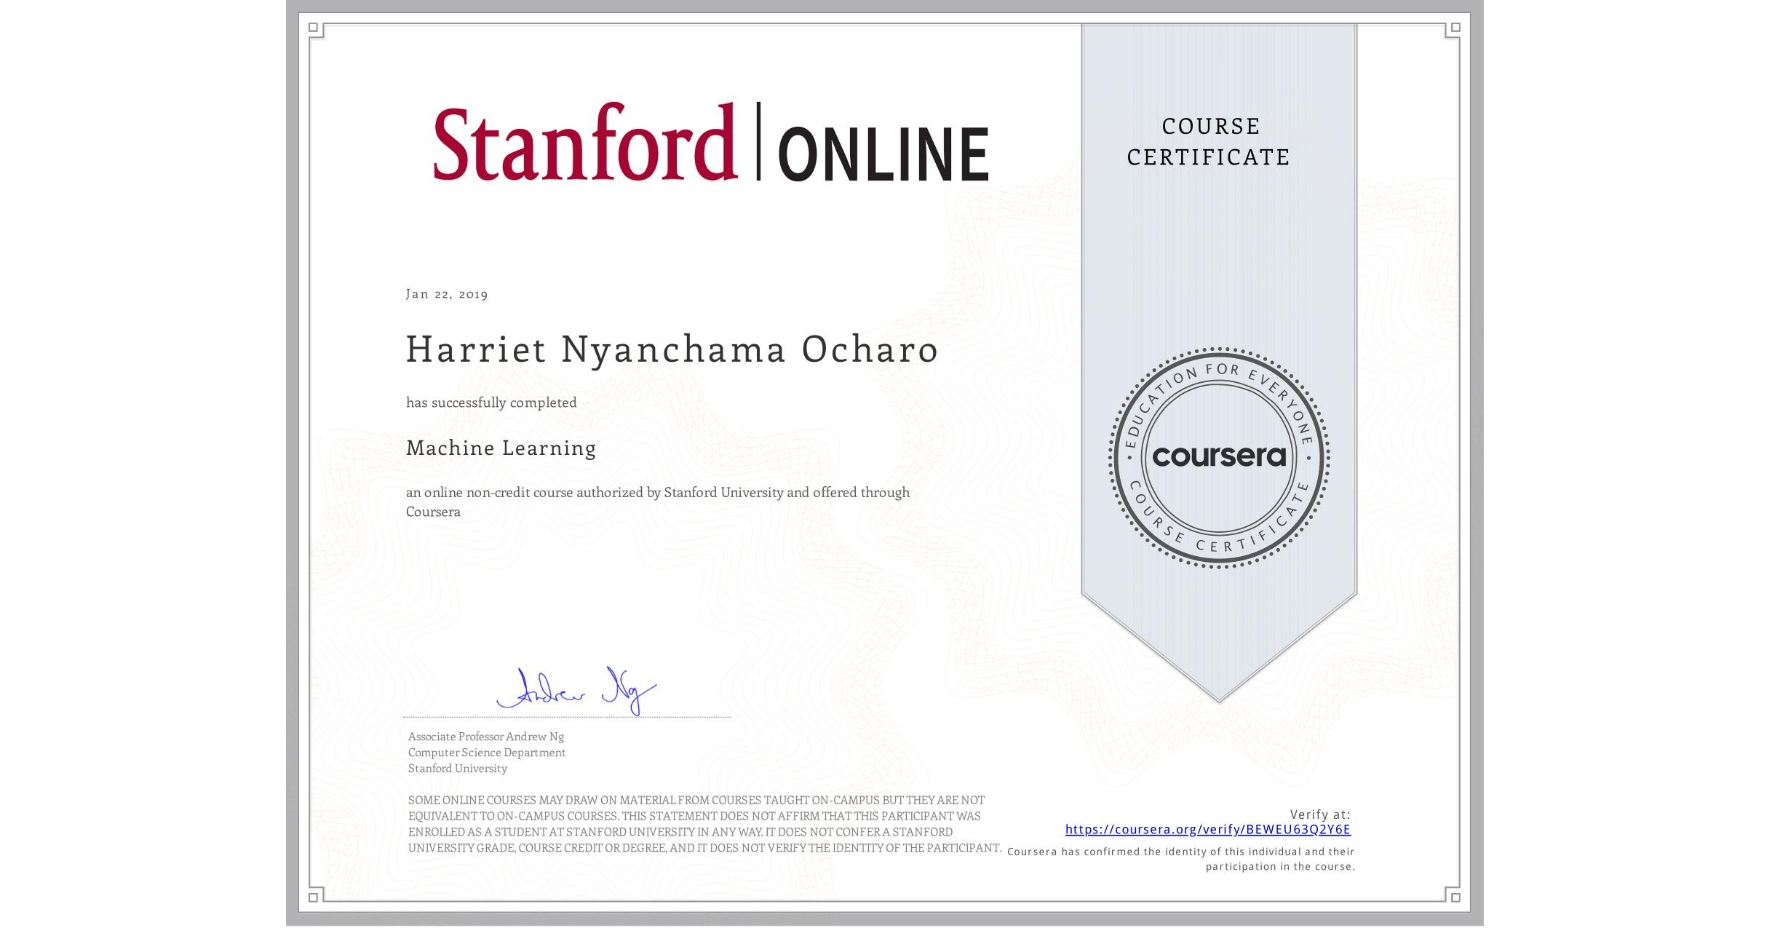 View certificate for Harriet Nyanchama Ocharo, Machine Learning, an online non-credit course authorized by Stanford University and offered through Coursera